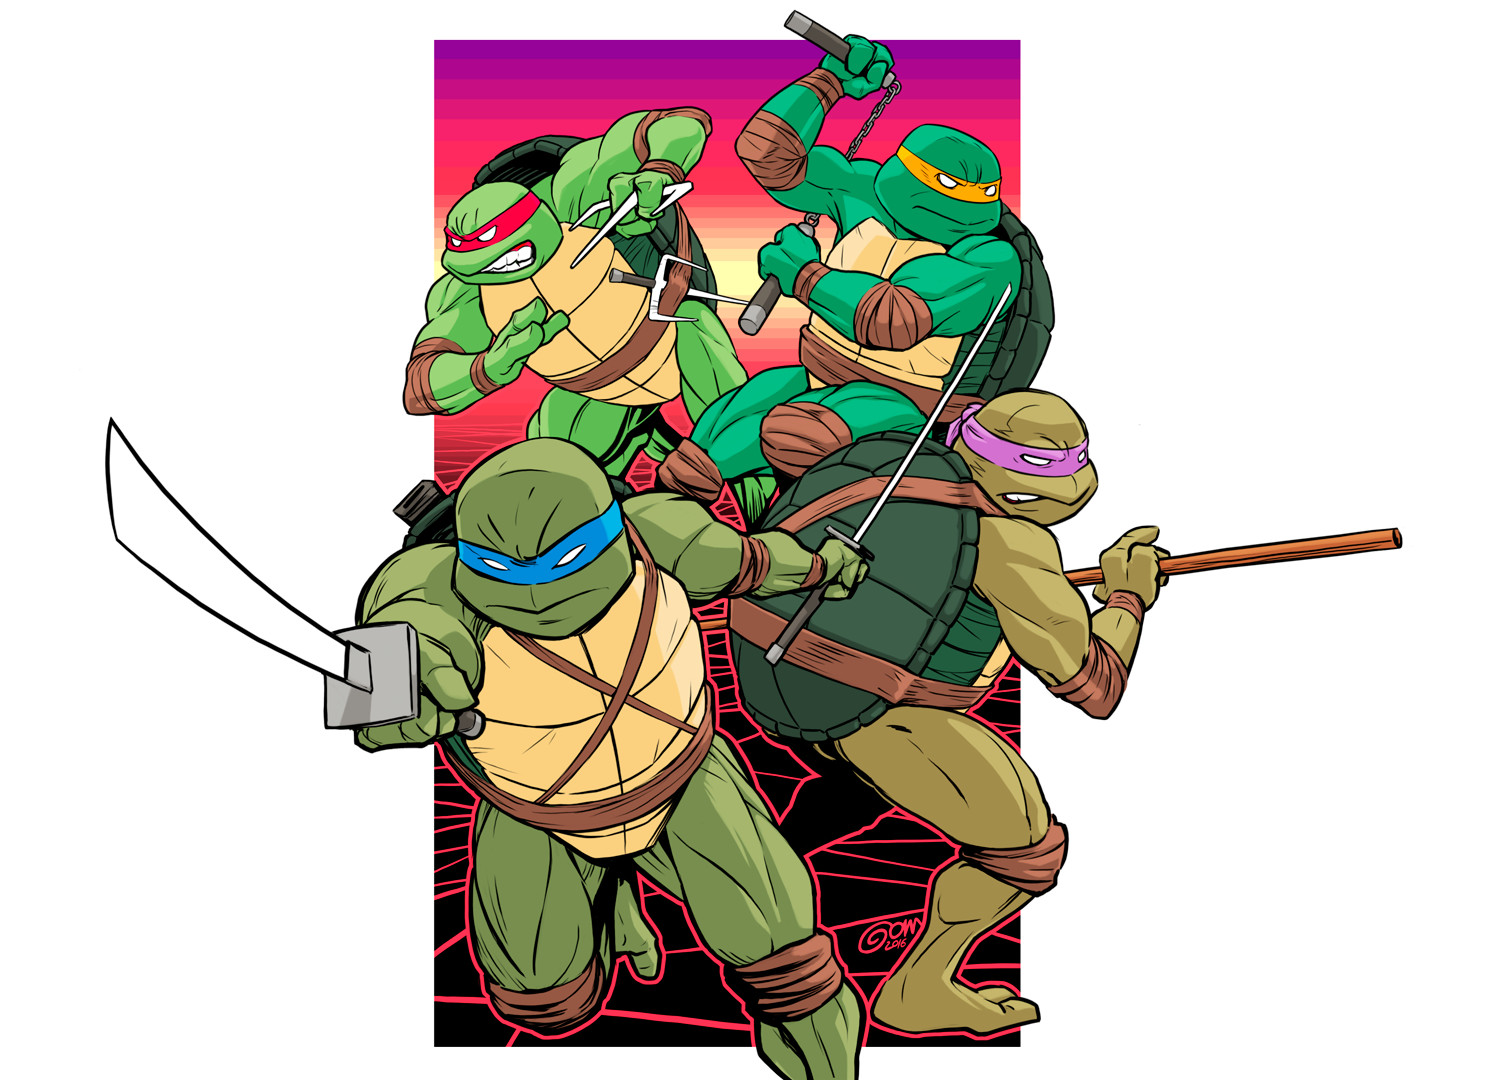 Guillaume gom poitel tmnt end7